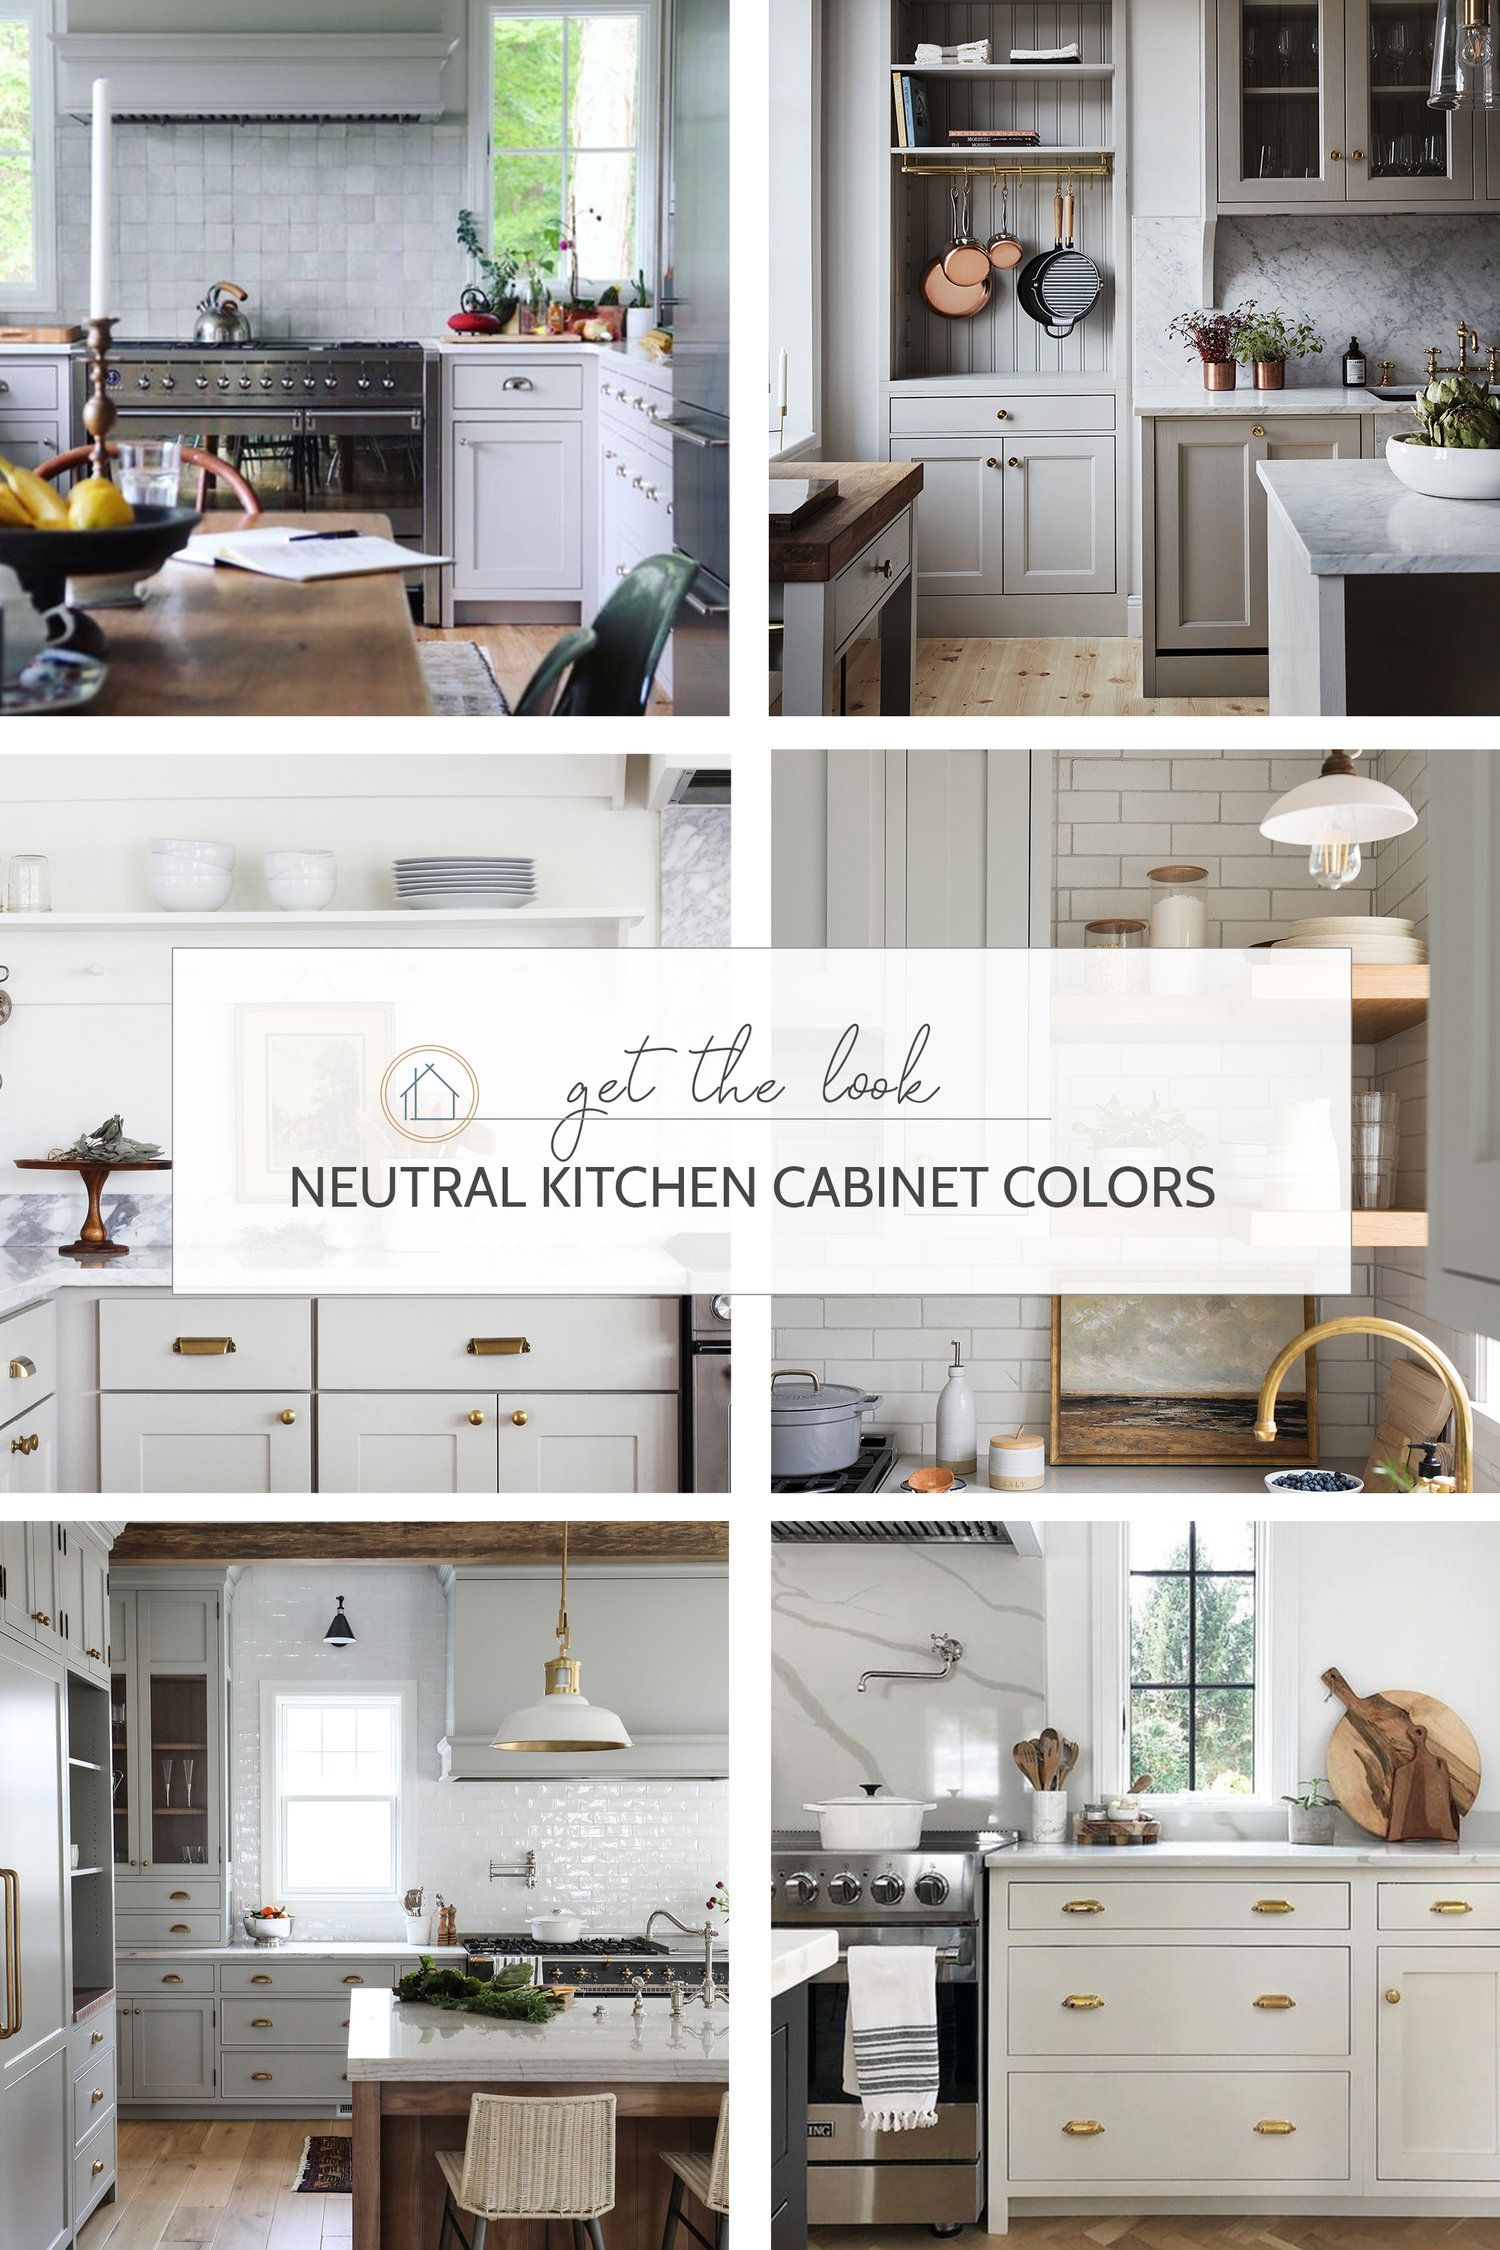 8 Great Neutral Cabinet Colors For Kitchens Neutral Cabinets Cabinet Colors Kitchen Colors